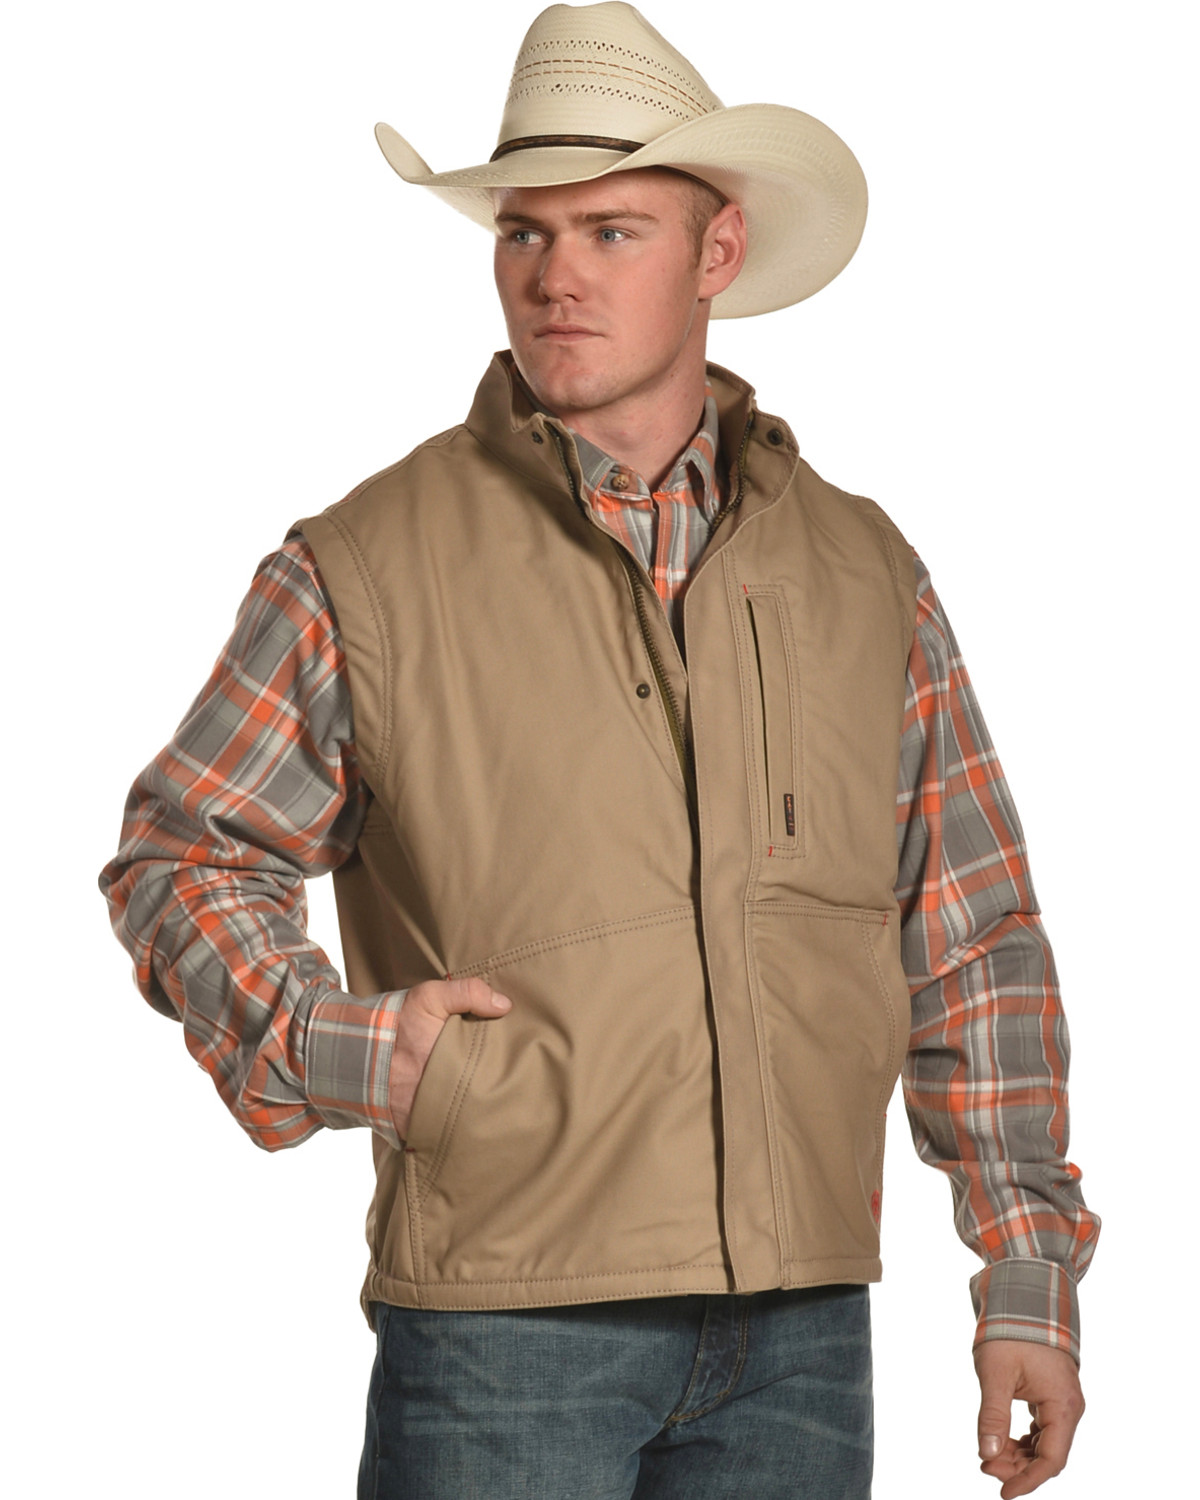 Ariat Shirts Fr | Toffee Art